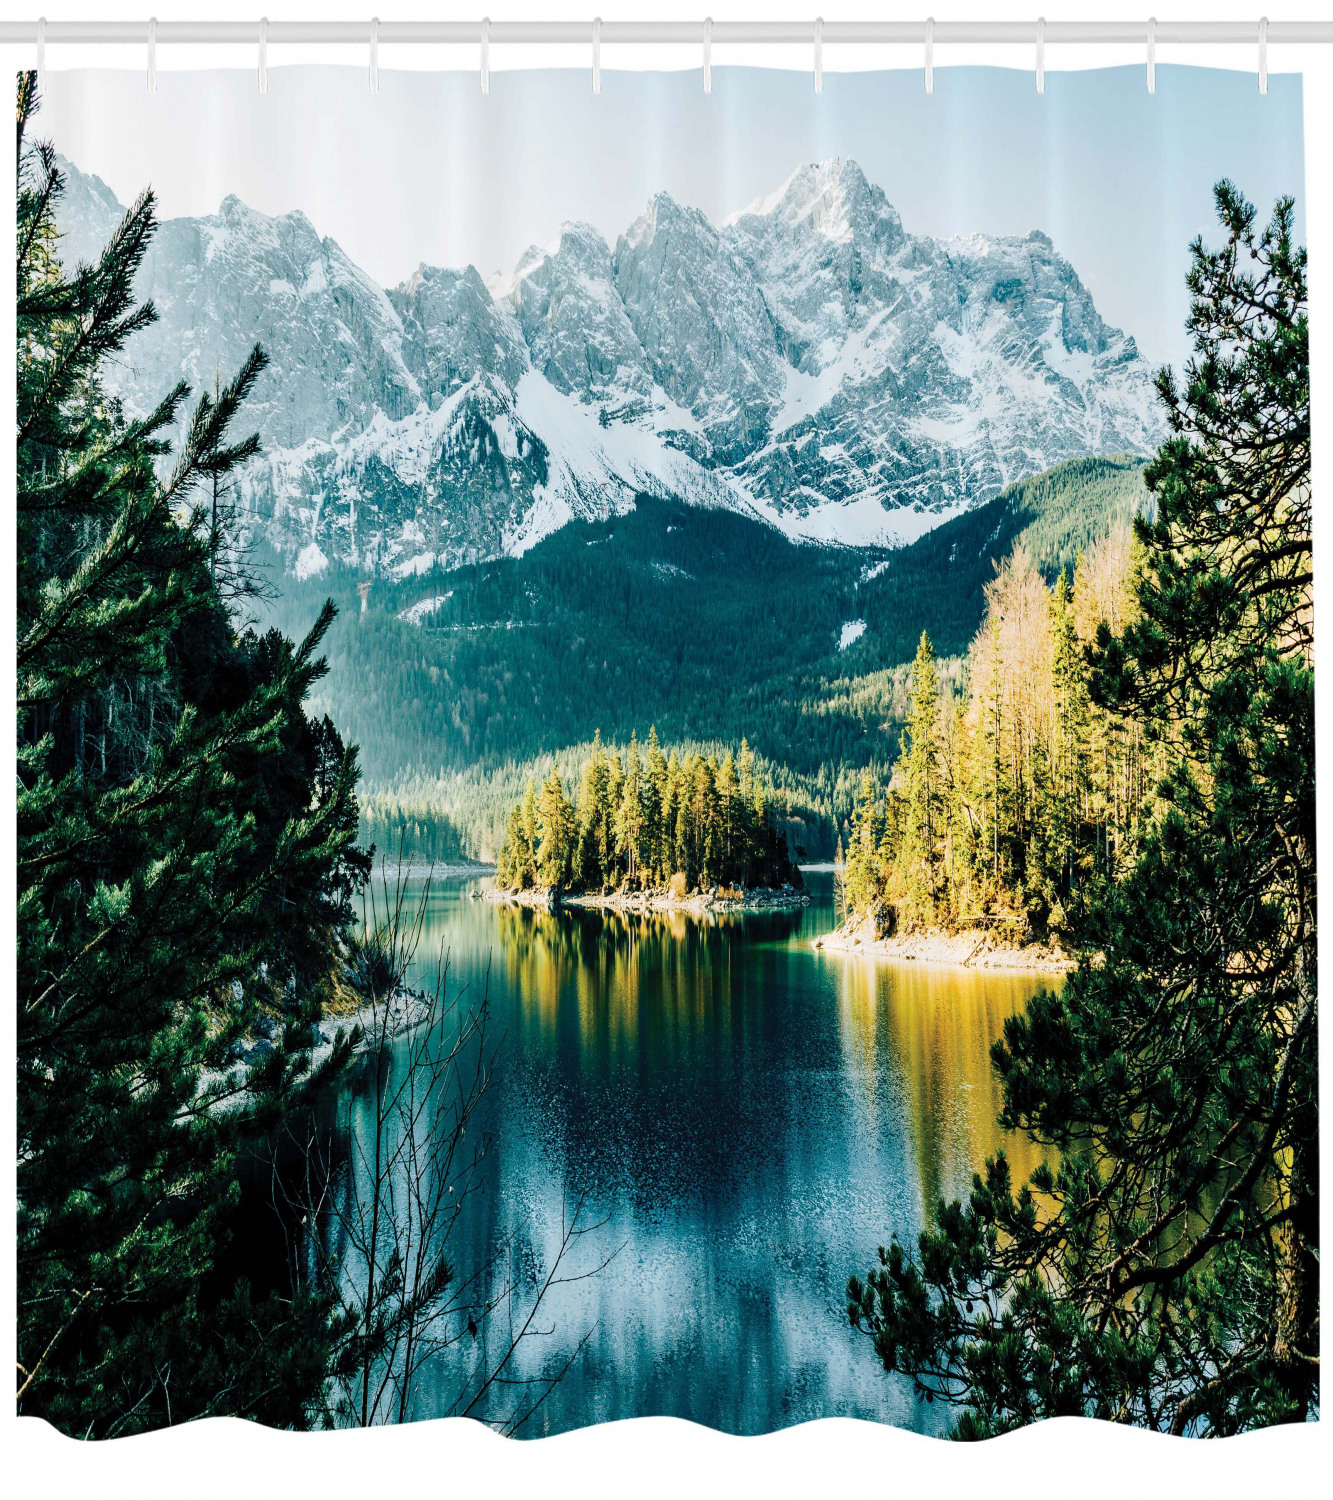 Tropical Jungle Mountain River Valley Scene Waterproof Fabric Shower Curtain Set